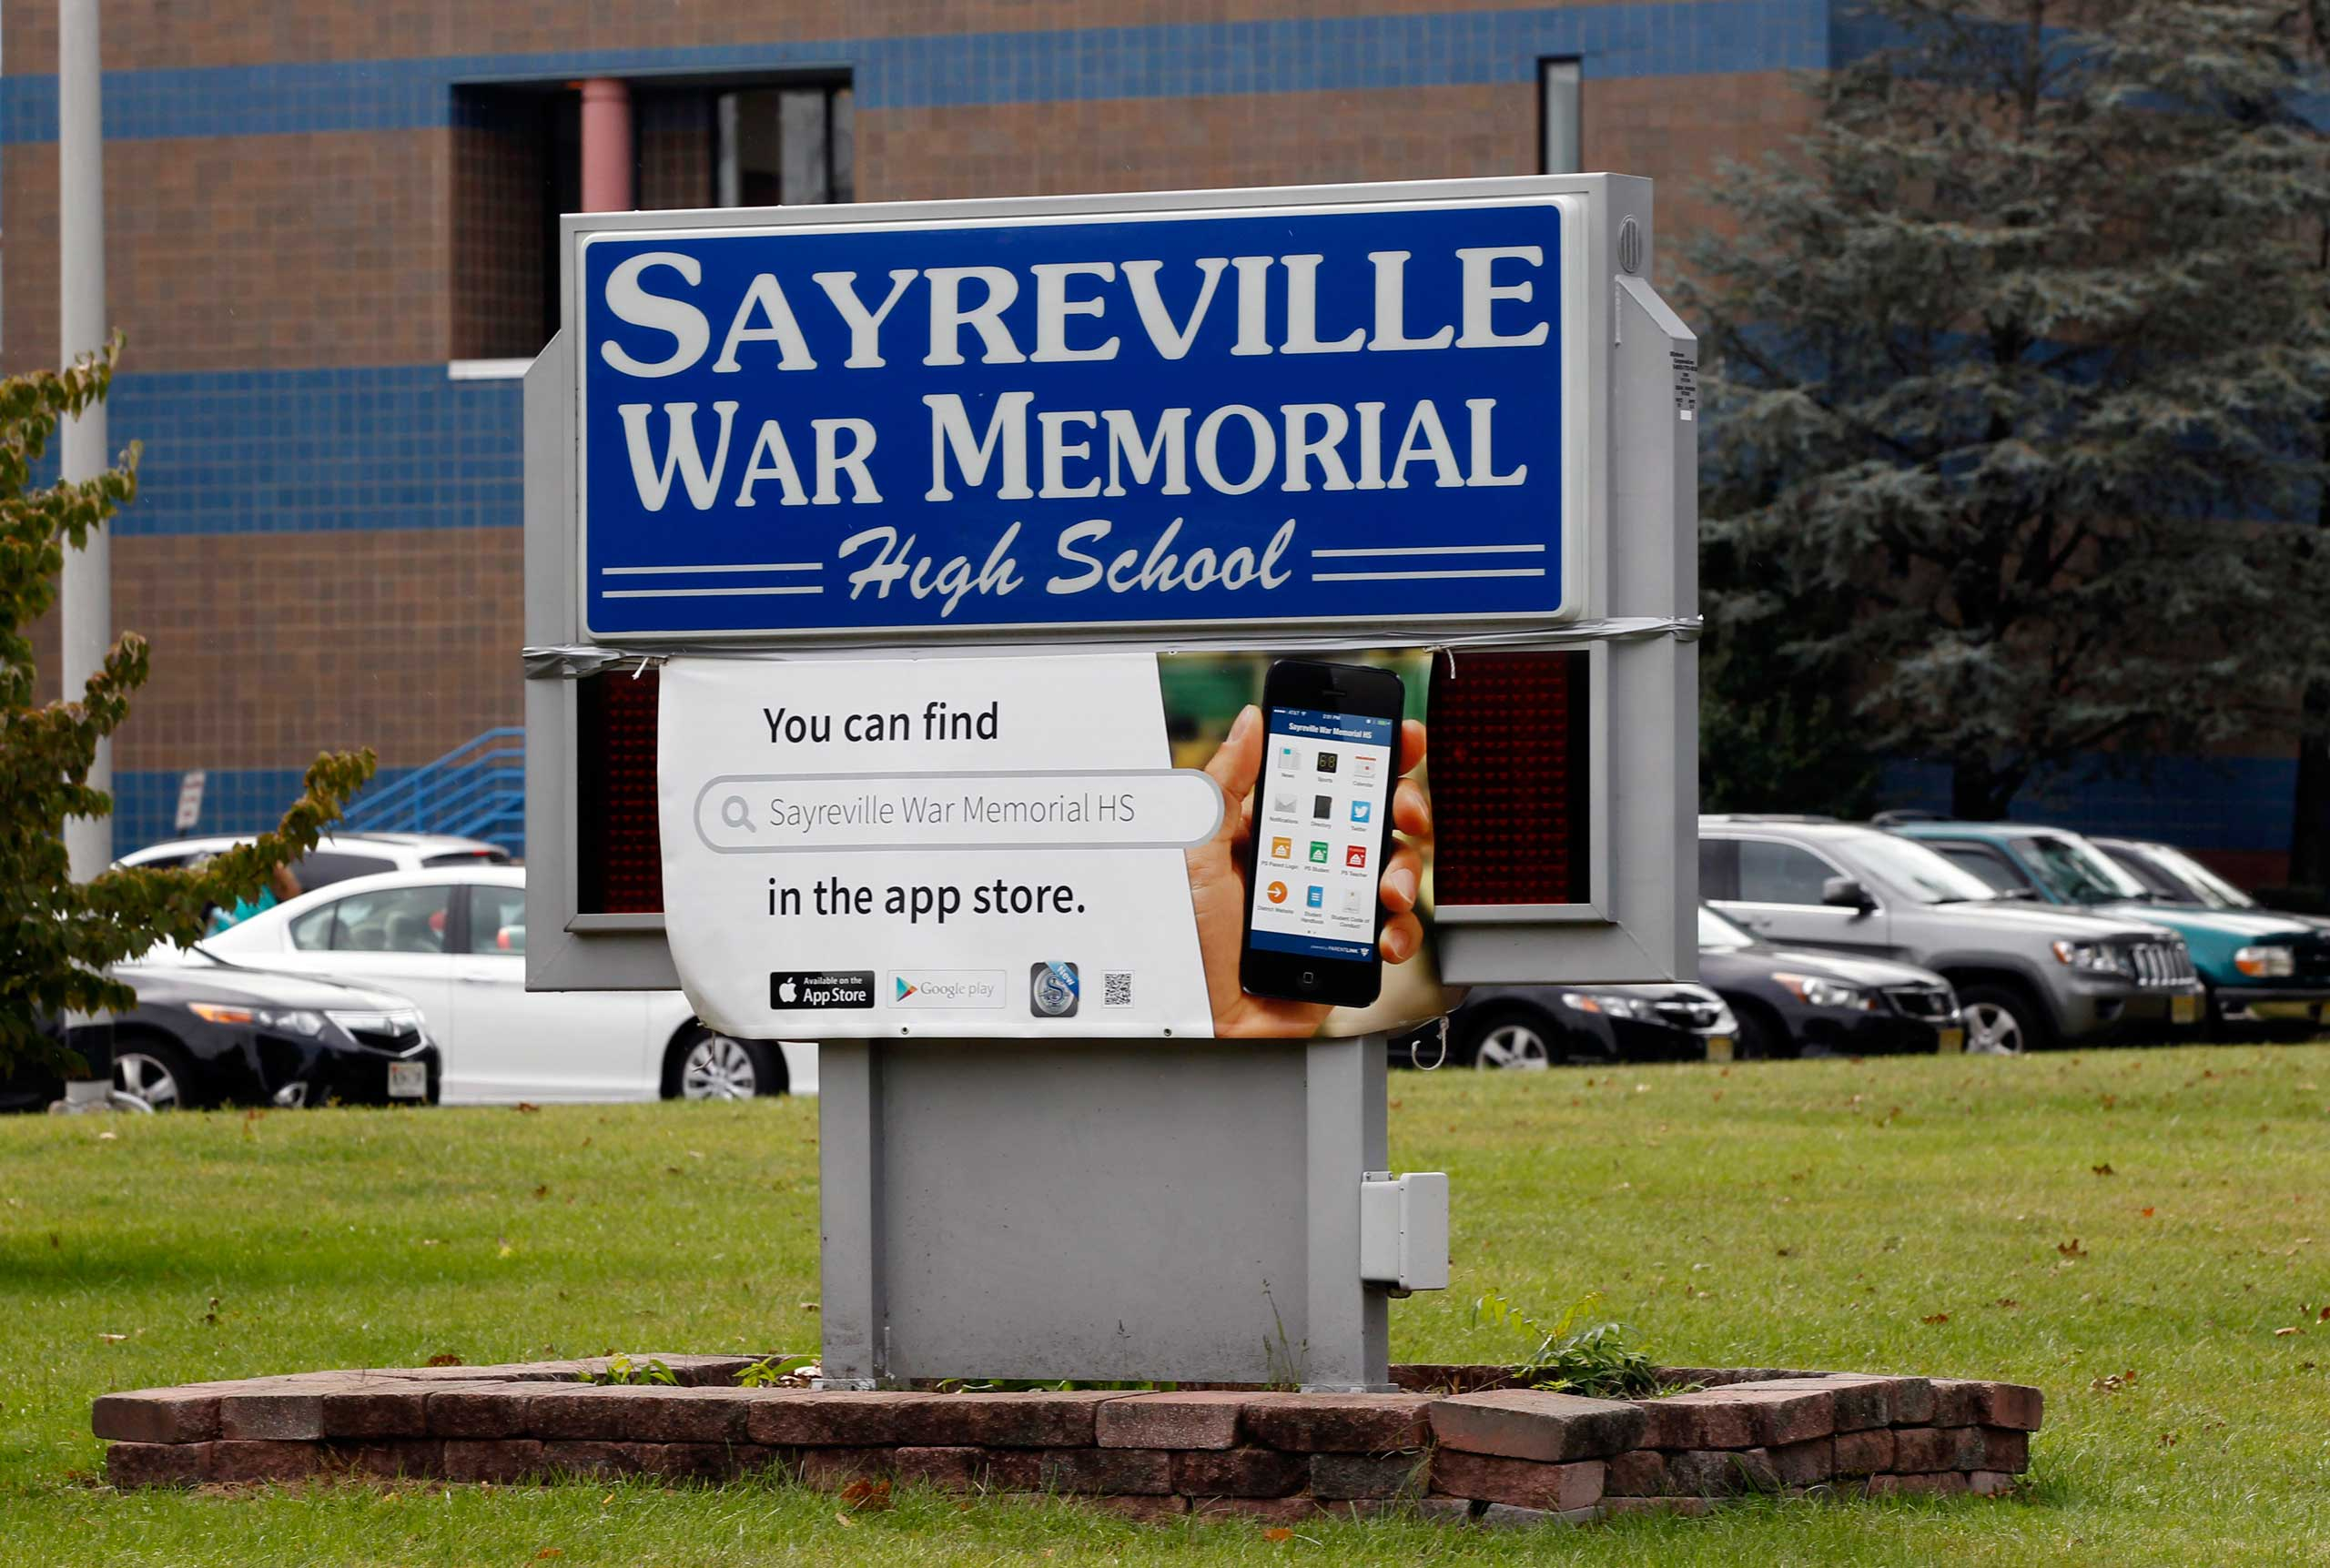 Sayreville War Memorial High School in Sayreville, N.J., Oct. 7, 2014.